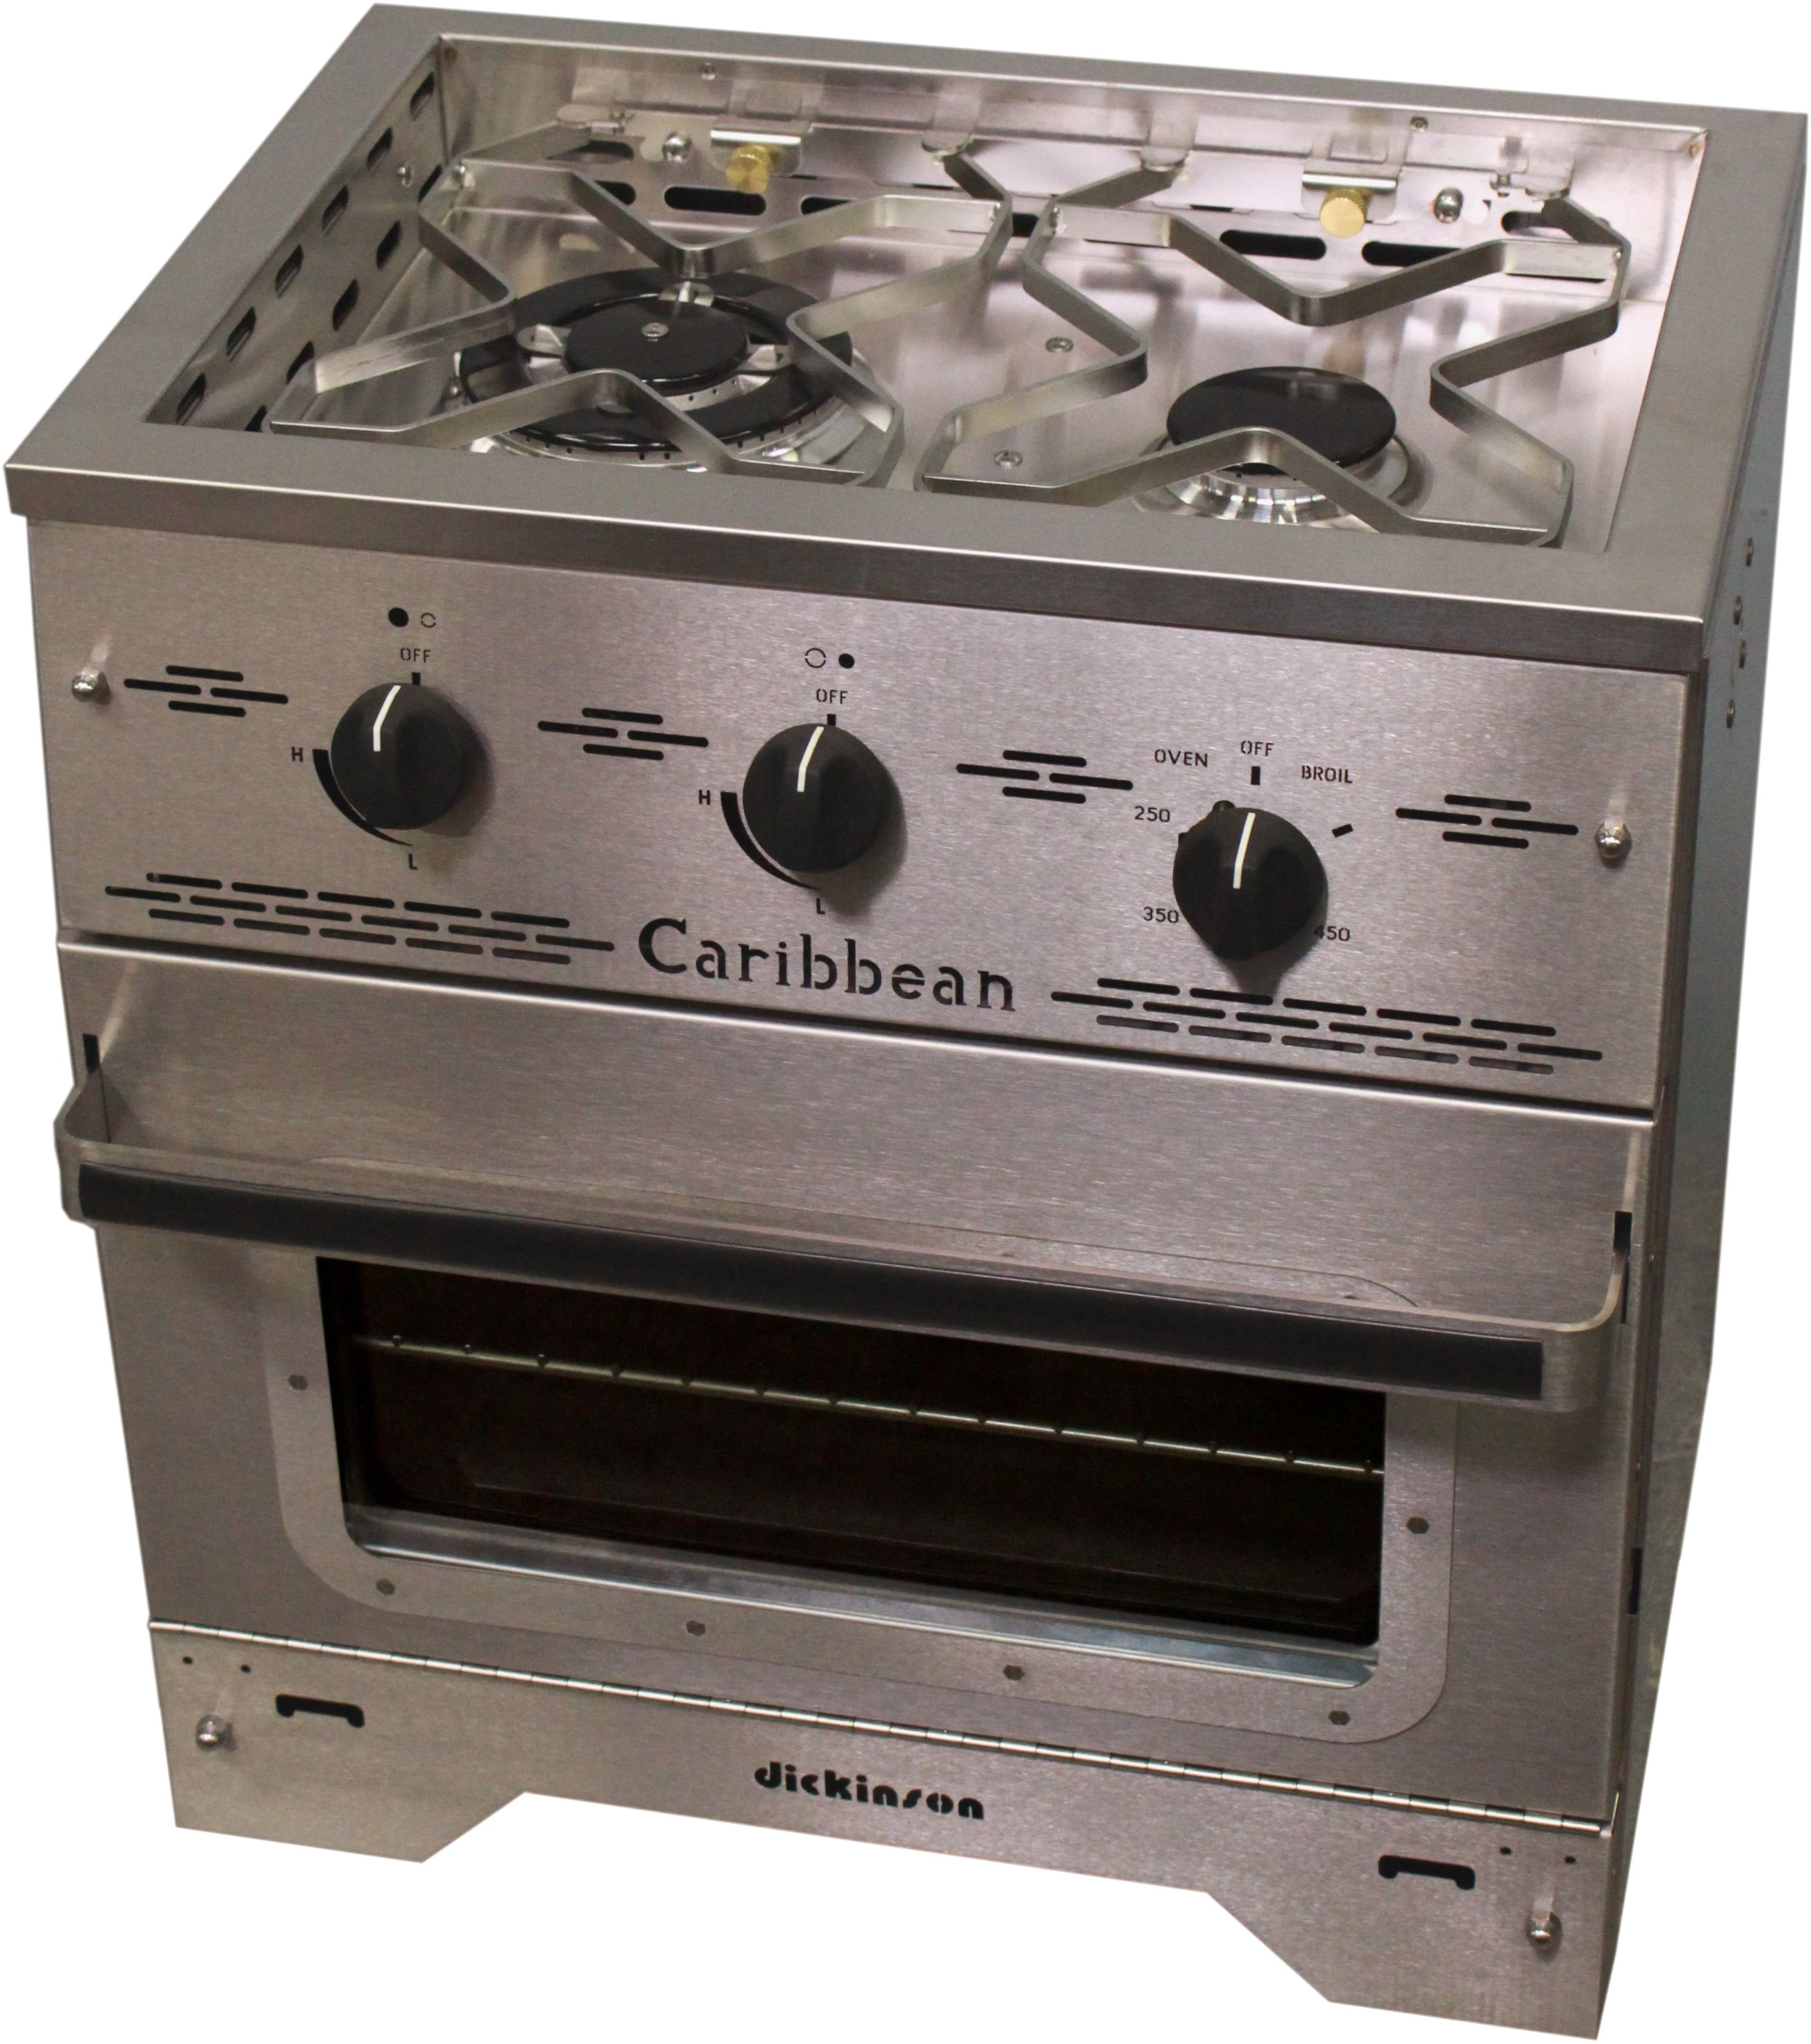 Caribbean Two Burner Gas Stove   Dickinson Marine | Dickinson Marine